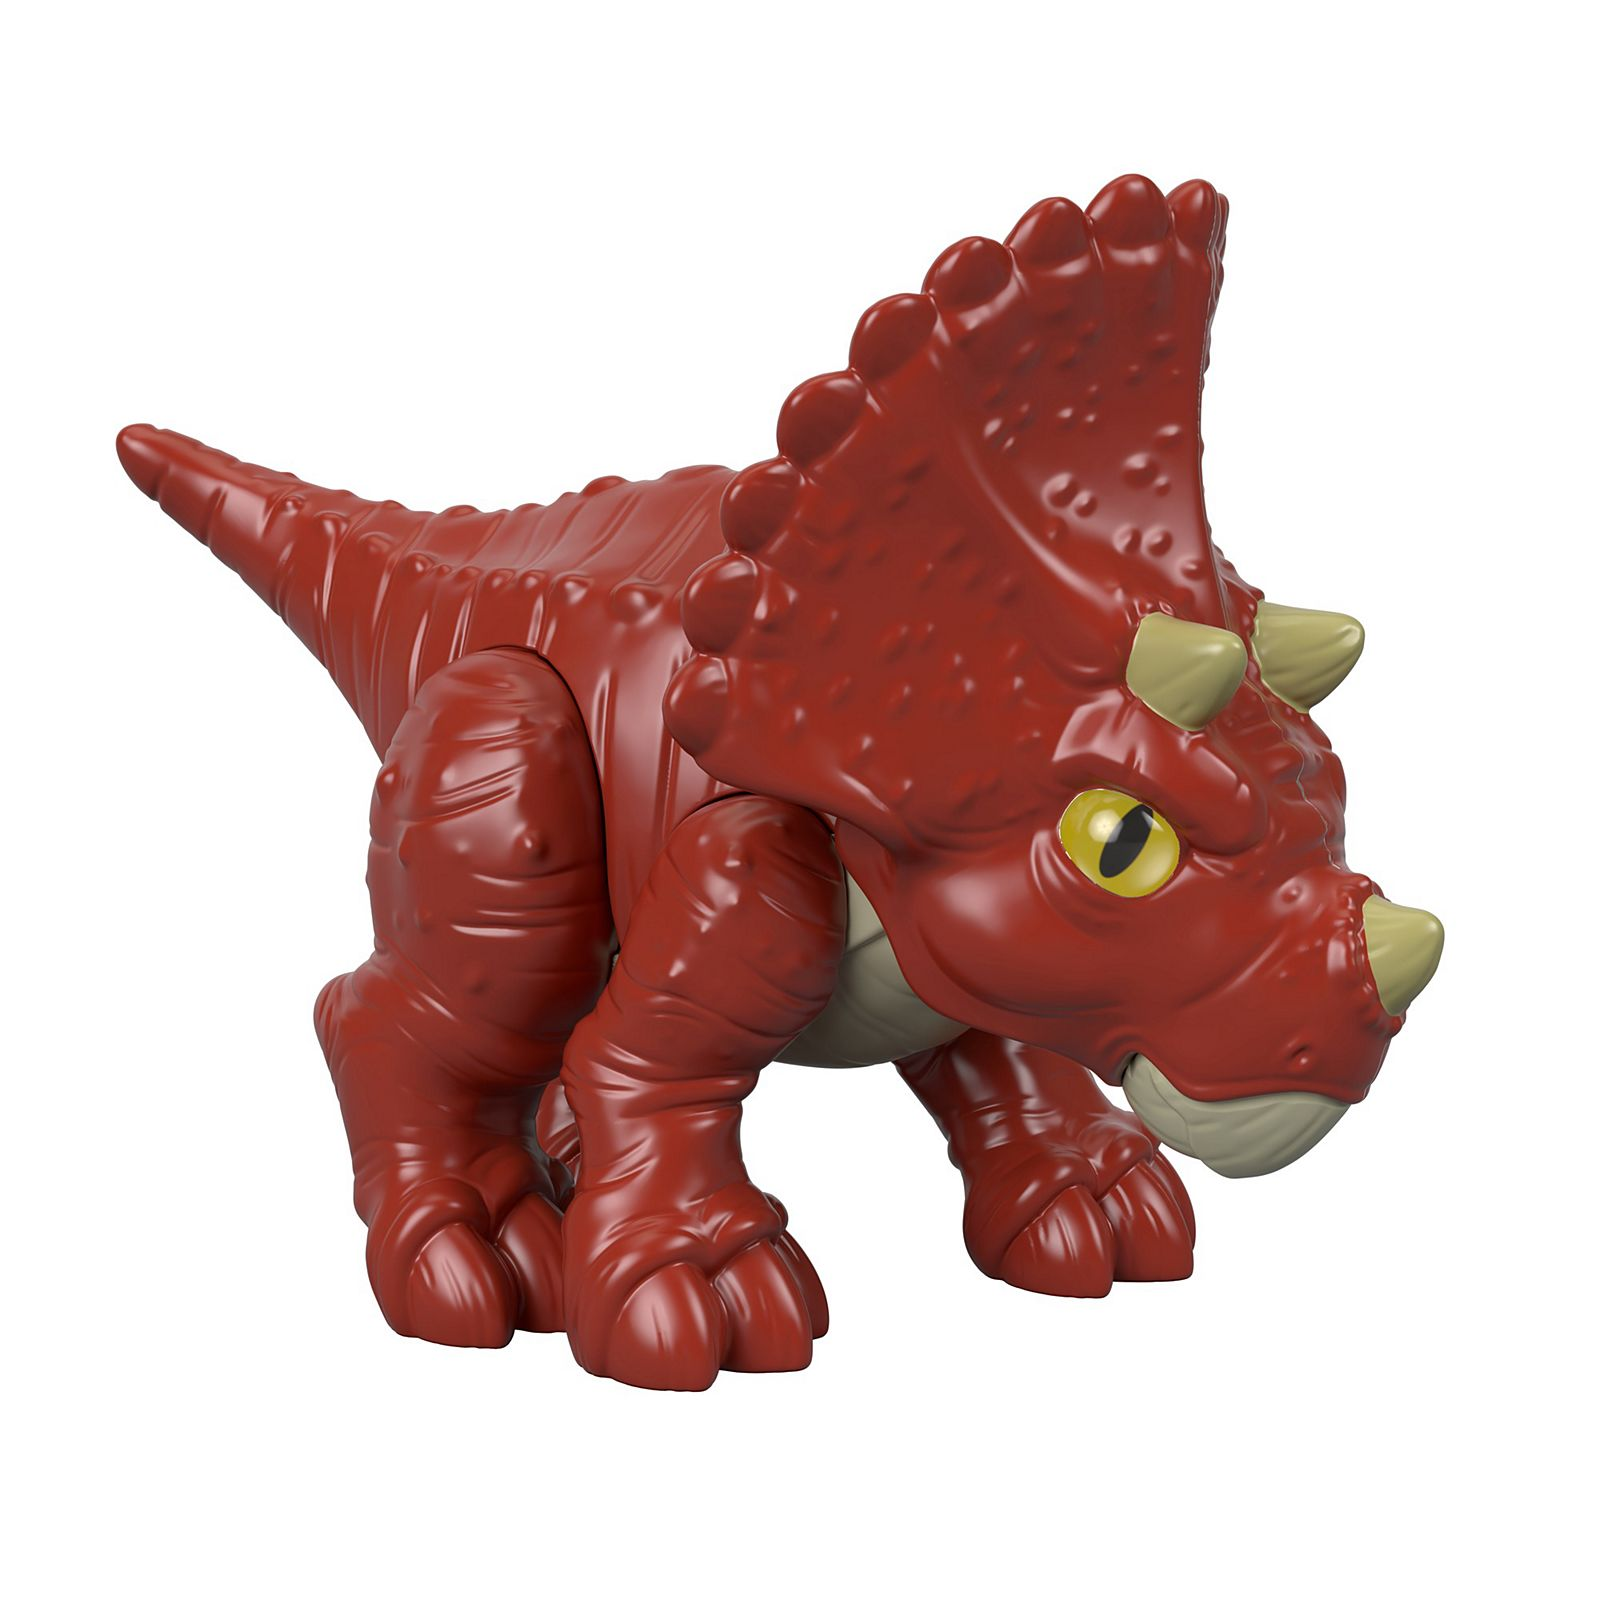 Imaginext Jurassic World Triceratops They first appeared during the triassic period, between 243 and 233.23 million years ago. imaginext jurassic world triceratops